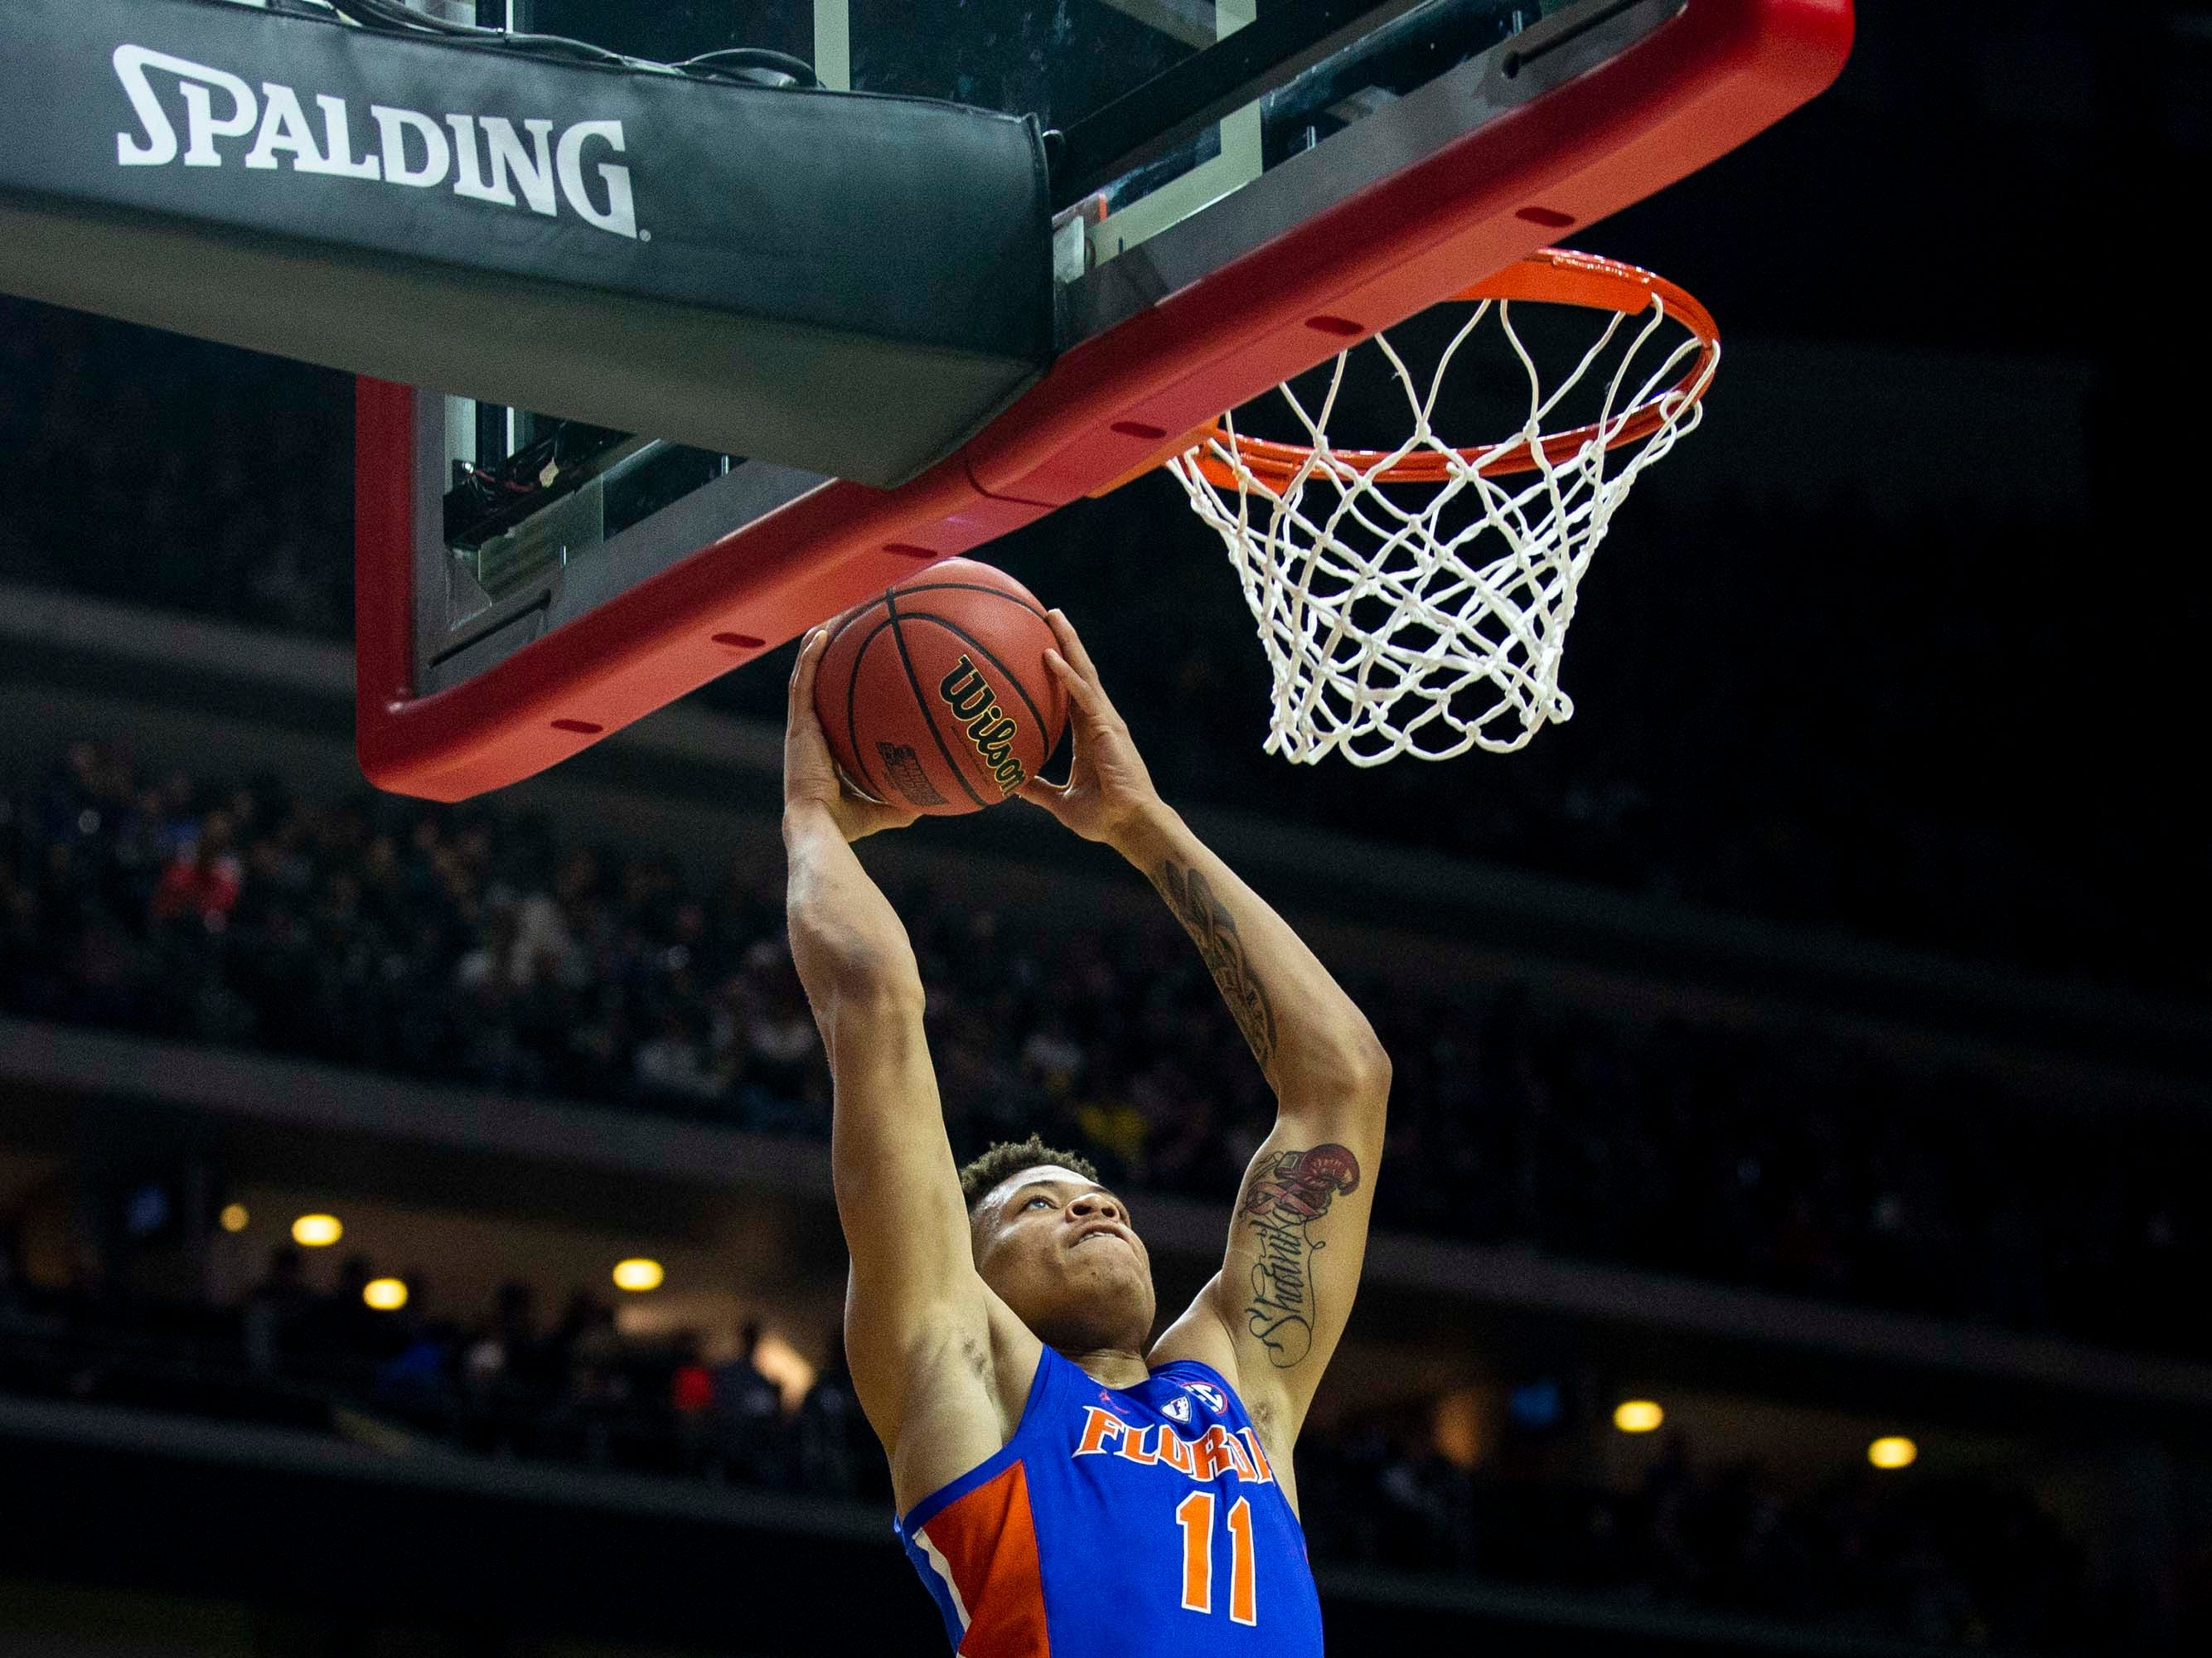 Florida's Keyontae Johnson dunks the ball during the NCAA Tournament second-round match-up between Michigan and Florida on Saturday, March 23, 2019, in Wells Fargo Arena in Des Moines, Iowa.